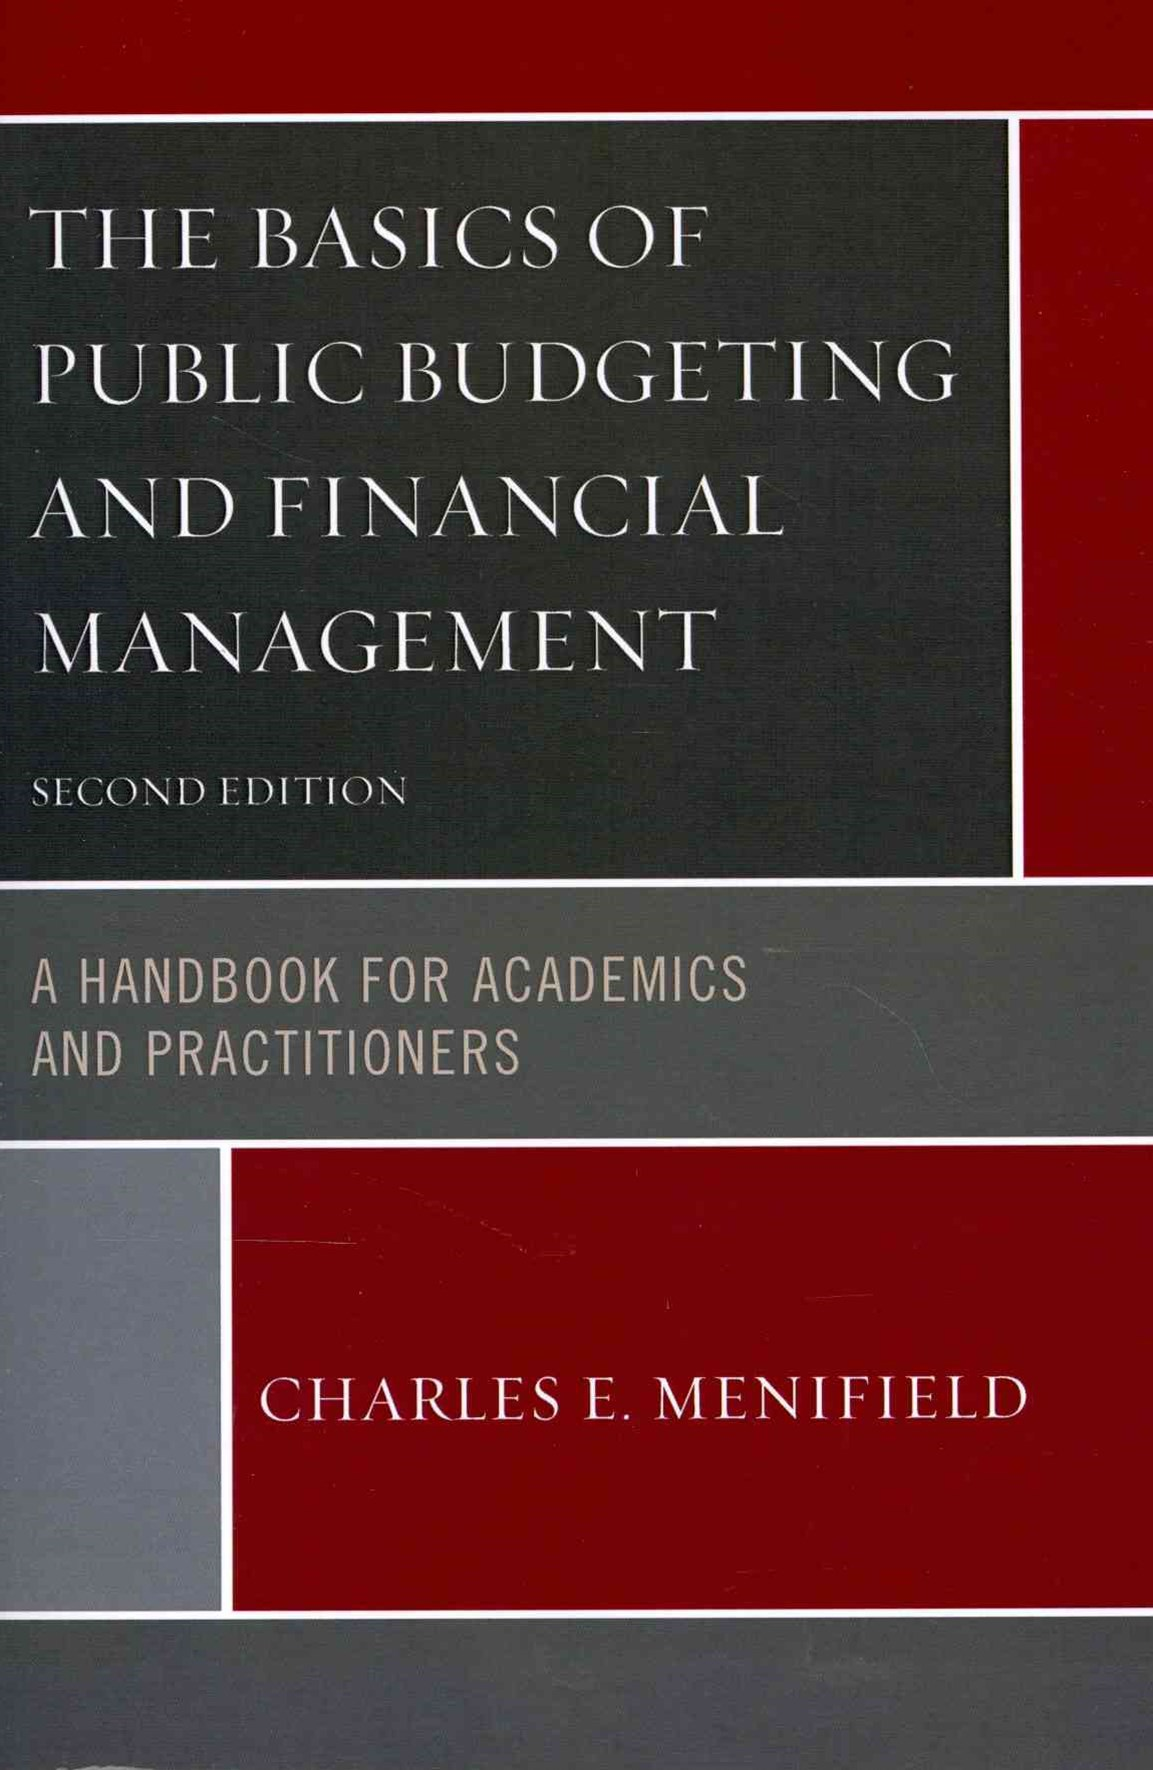 Basics of Public Budgeting and Financial Management